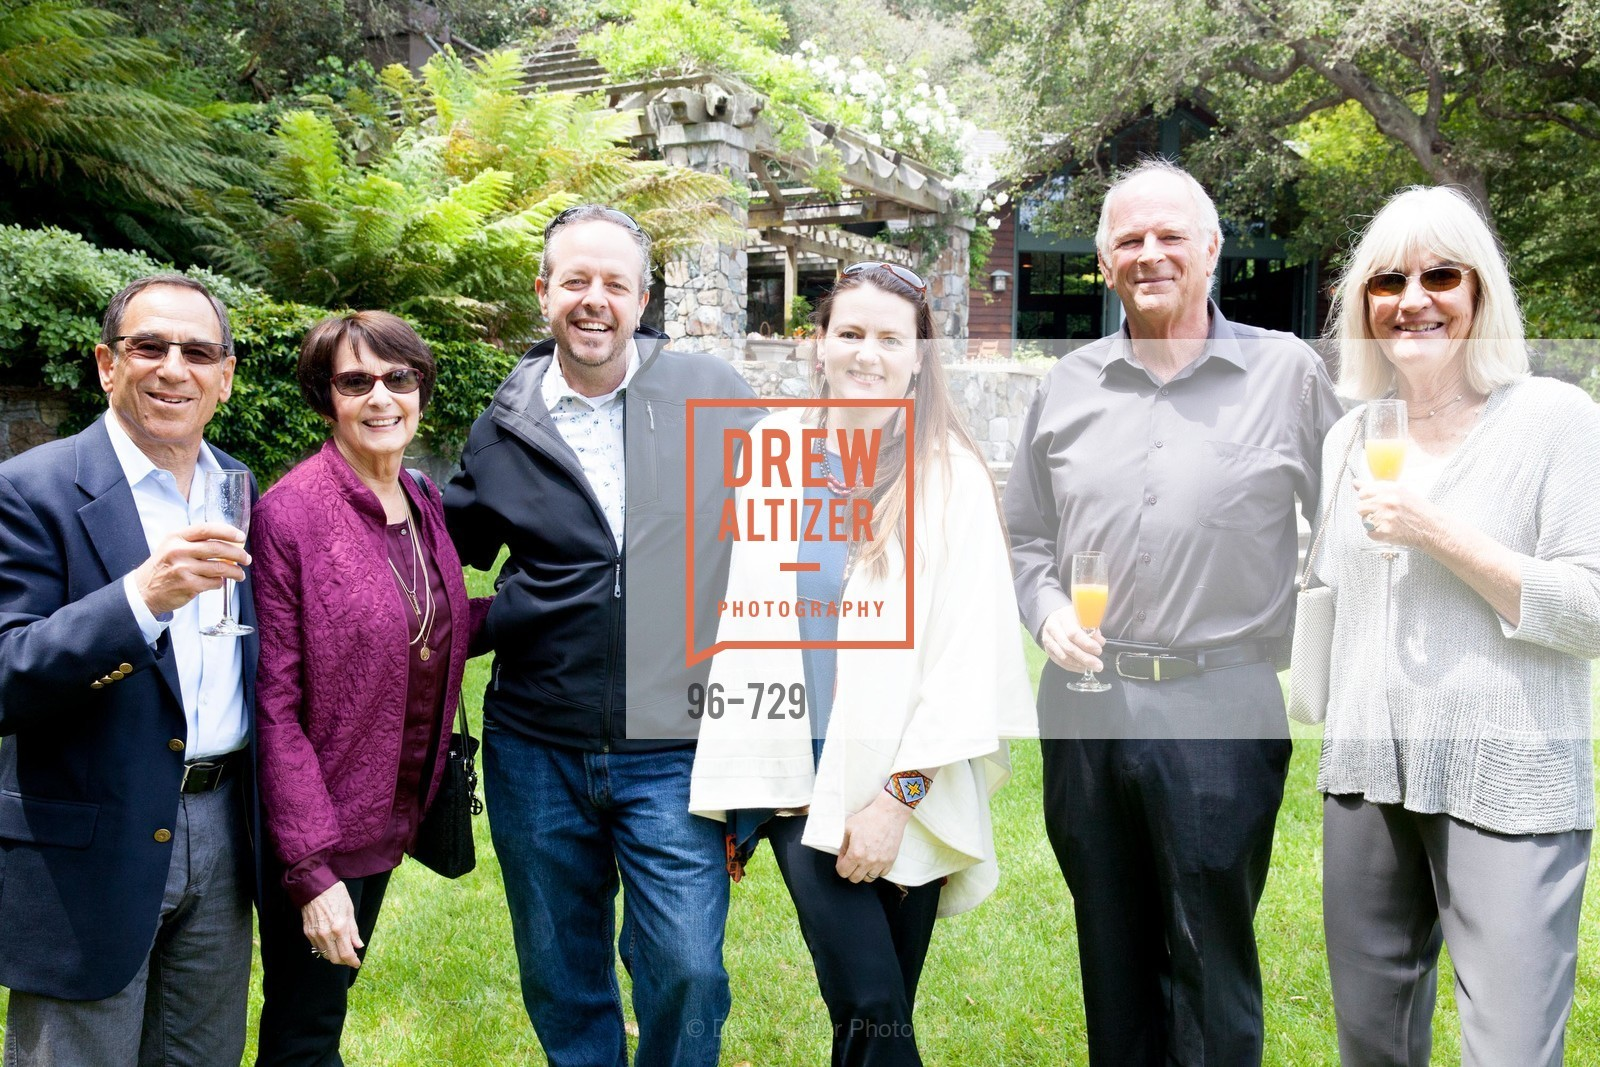 Stephen Wiel, Jacqueline Swire, Brenden Barber, Sarah McLeod, Bill Anderson, Etta Clark, THE TRUST FOR PUBLIC LAND Luncheon Hosted by THE DREVER FAMILY FOUNDATION, US, May 14th, 2015,Drew Altizer, Drew Altizer Photography, full-service agency, private events, San Francisco photographer, photographer california